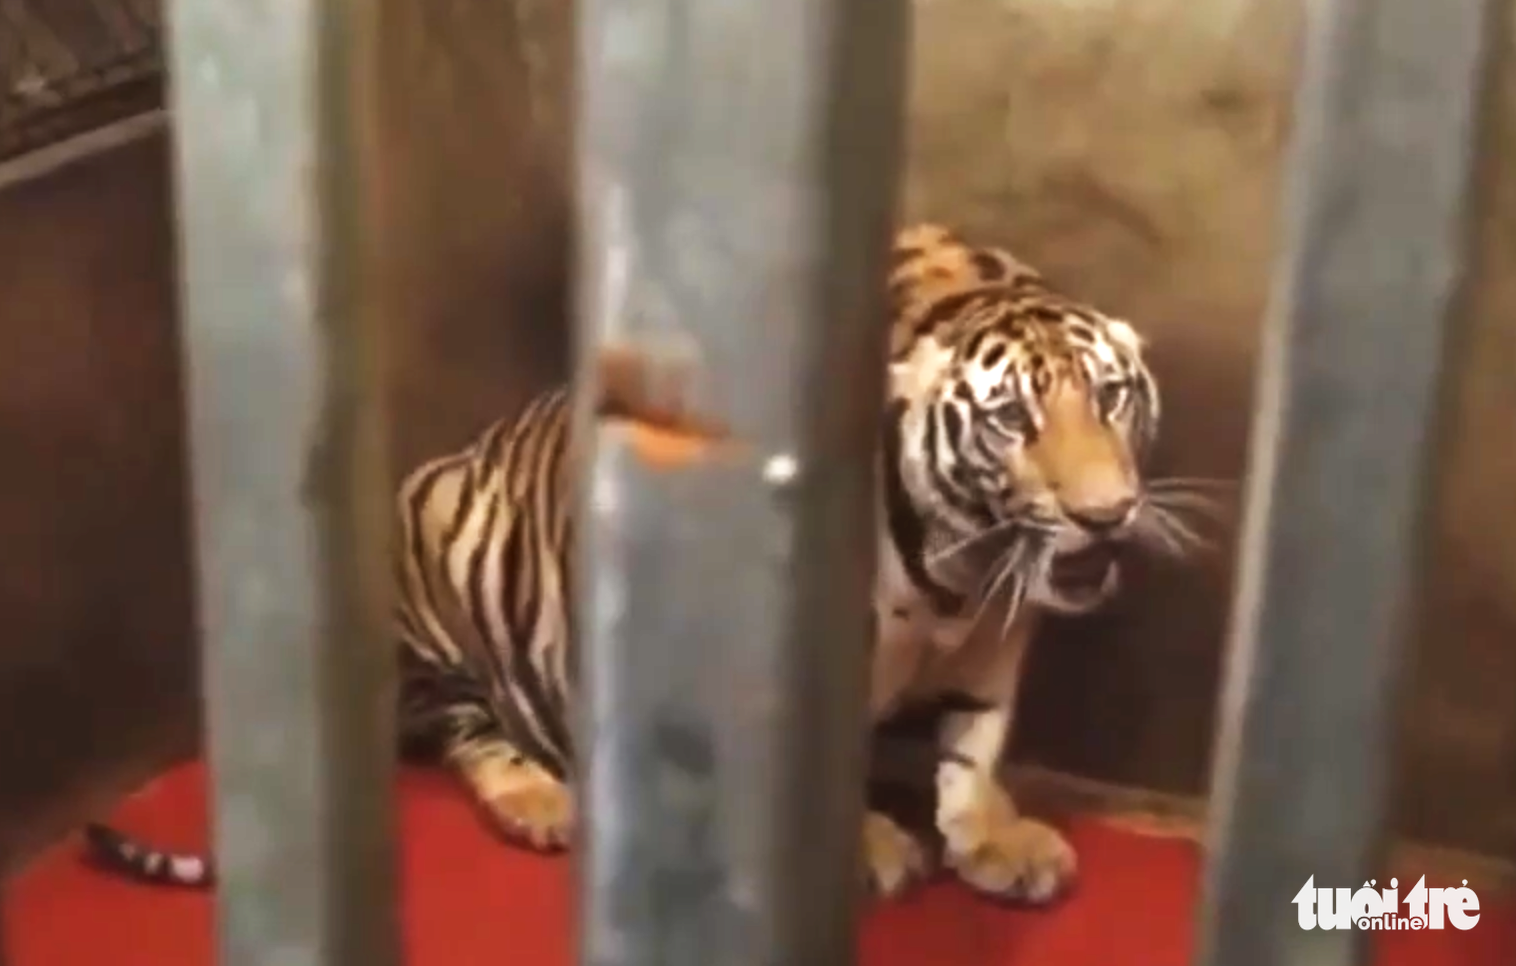 Residents turn homes into illegal tiger farms in north-central Vietnam